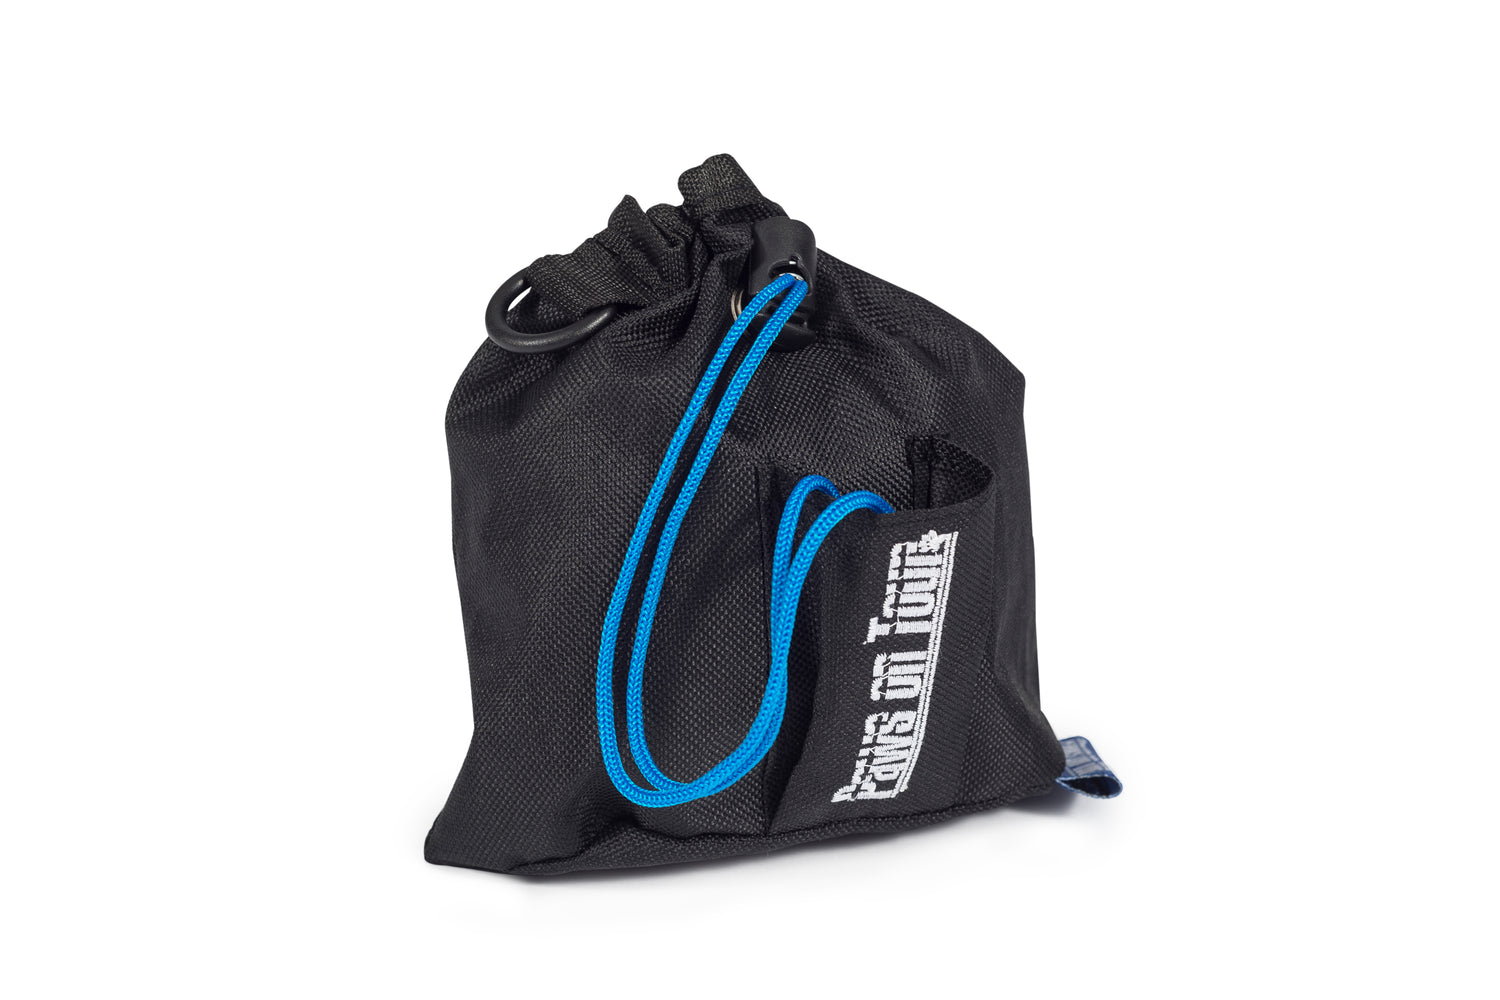 Paws on Tour Treat Bag - Black